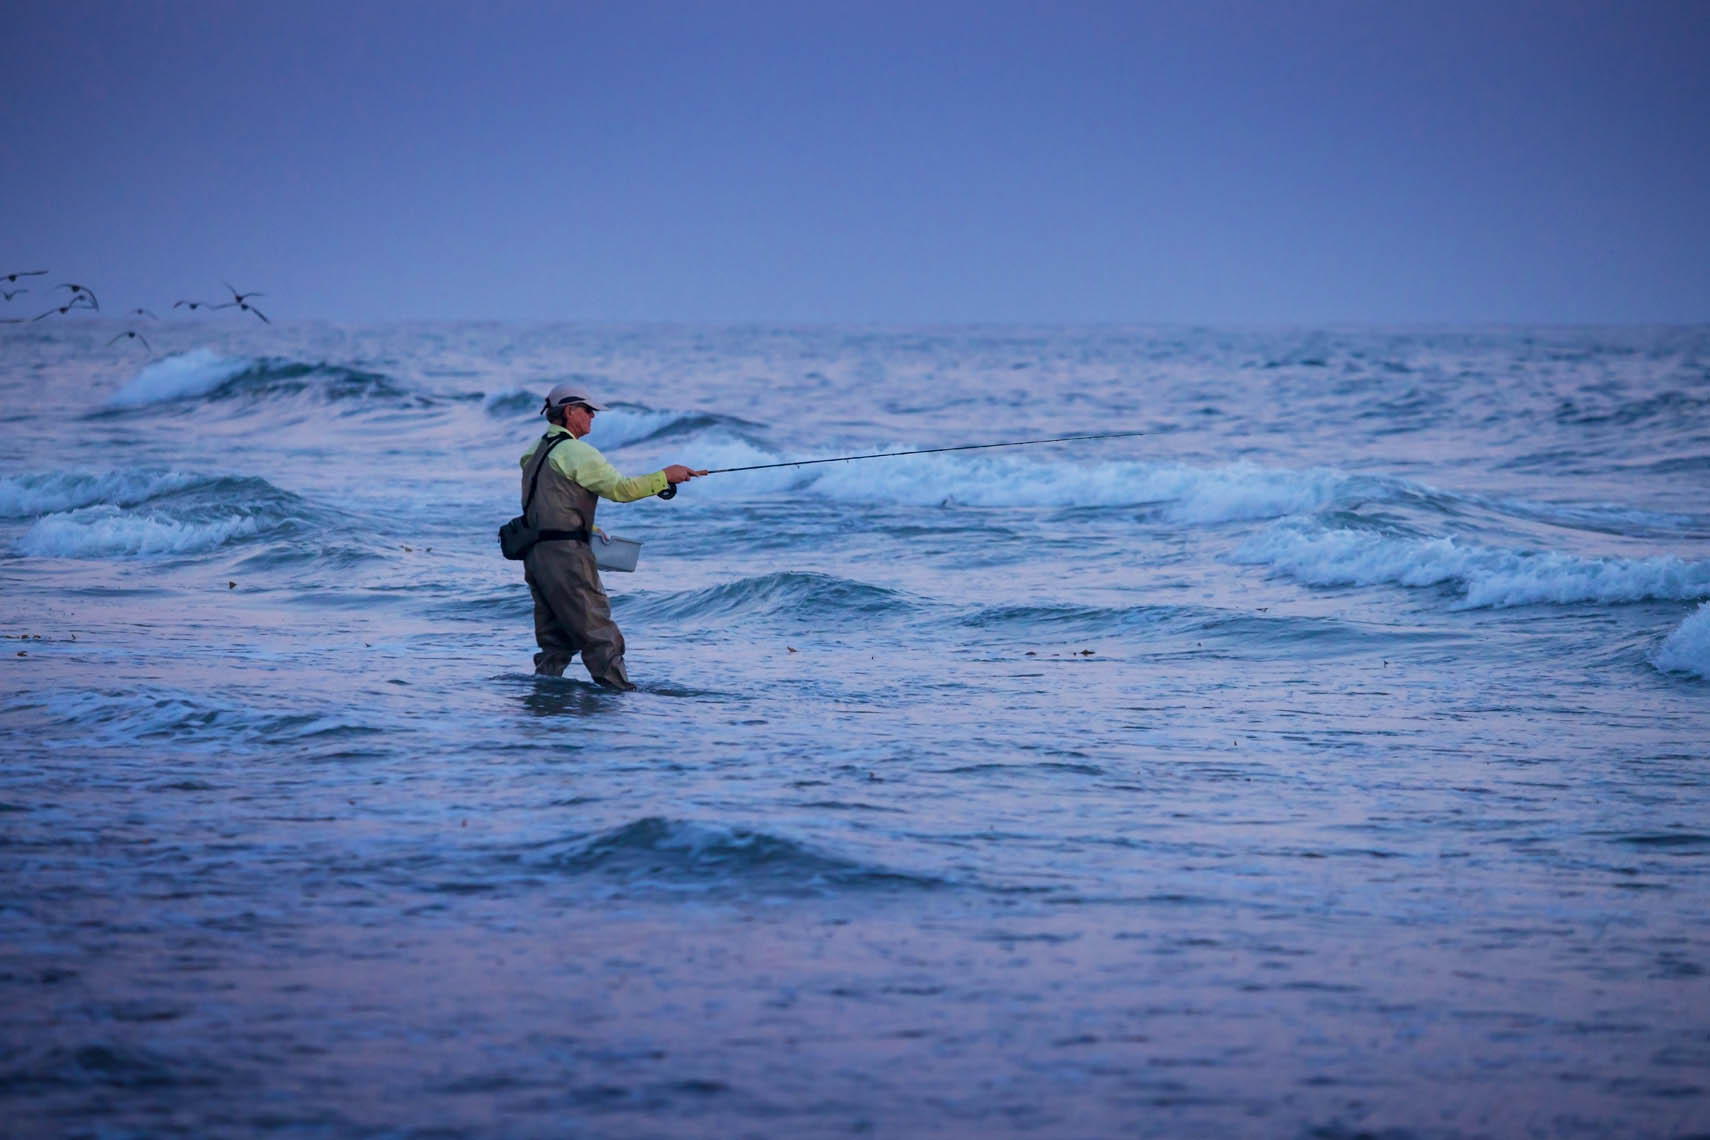 fly fishing for perch in the surf